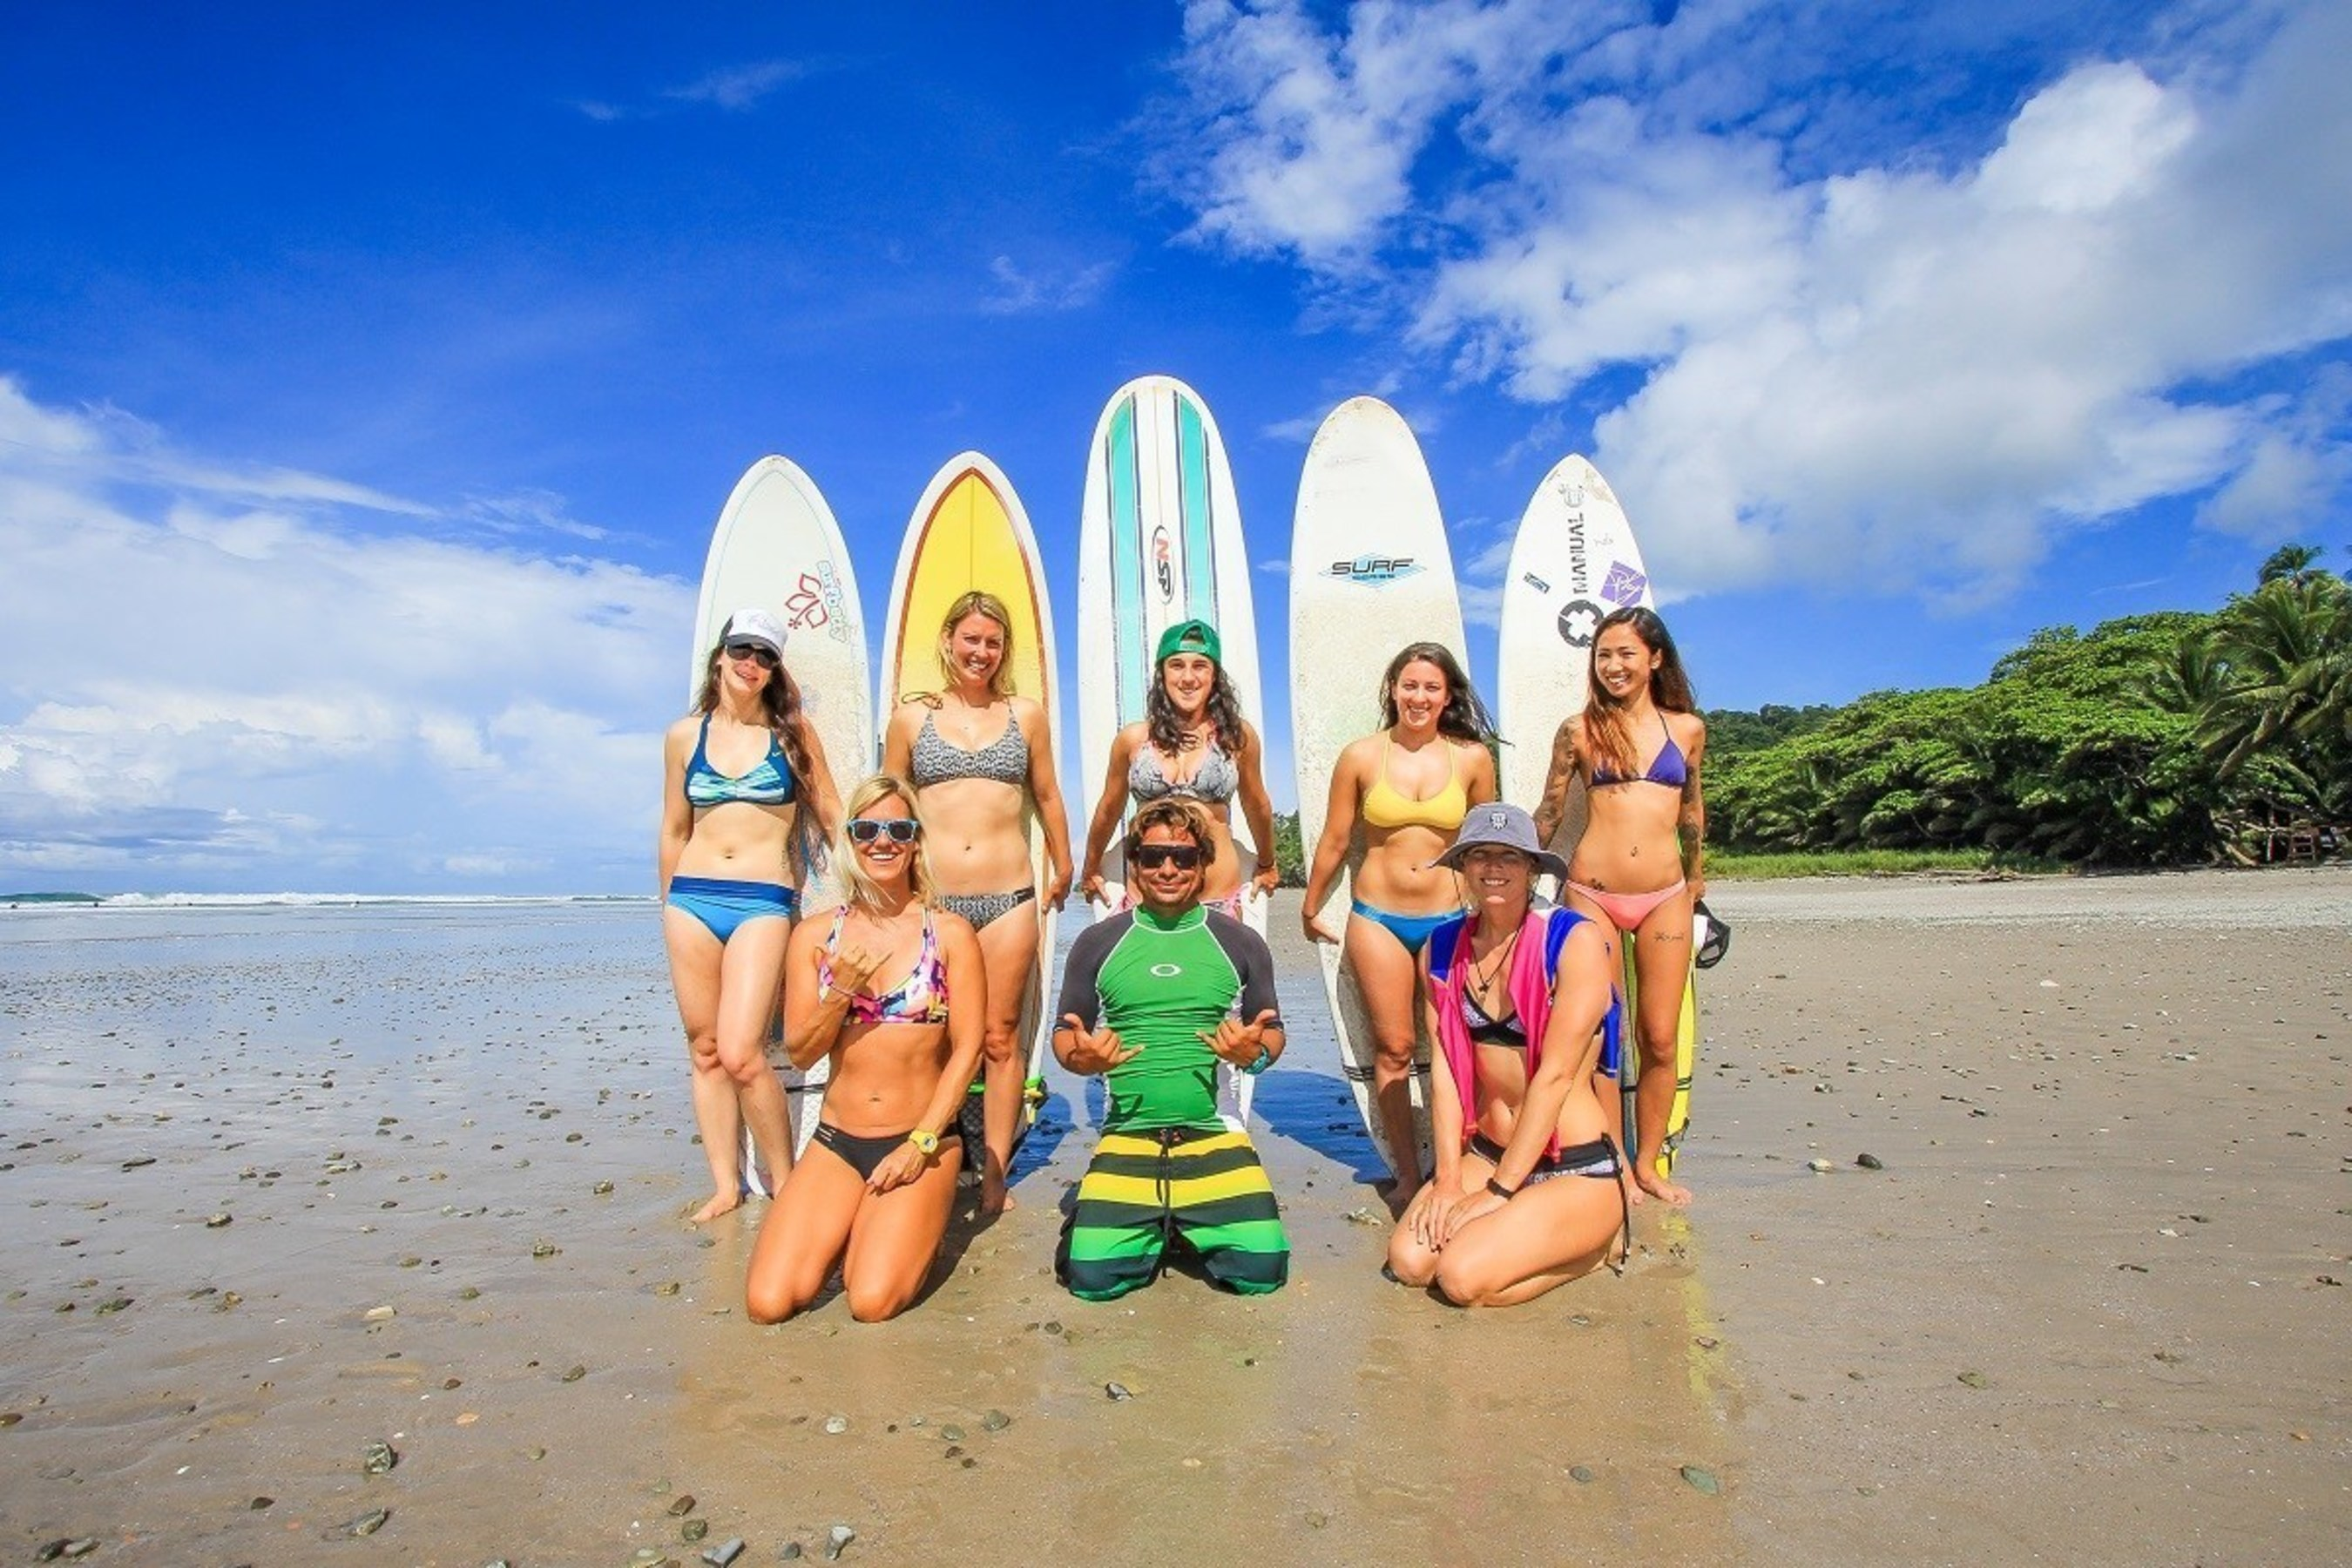 Learning to surf and living the dream in this Costa Rican paradise